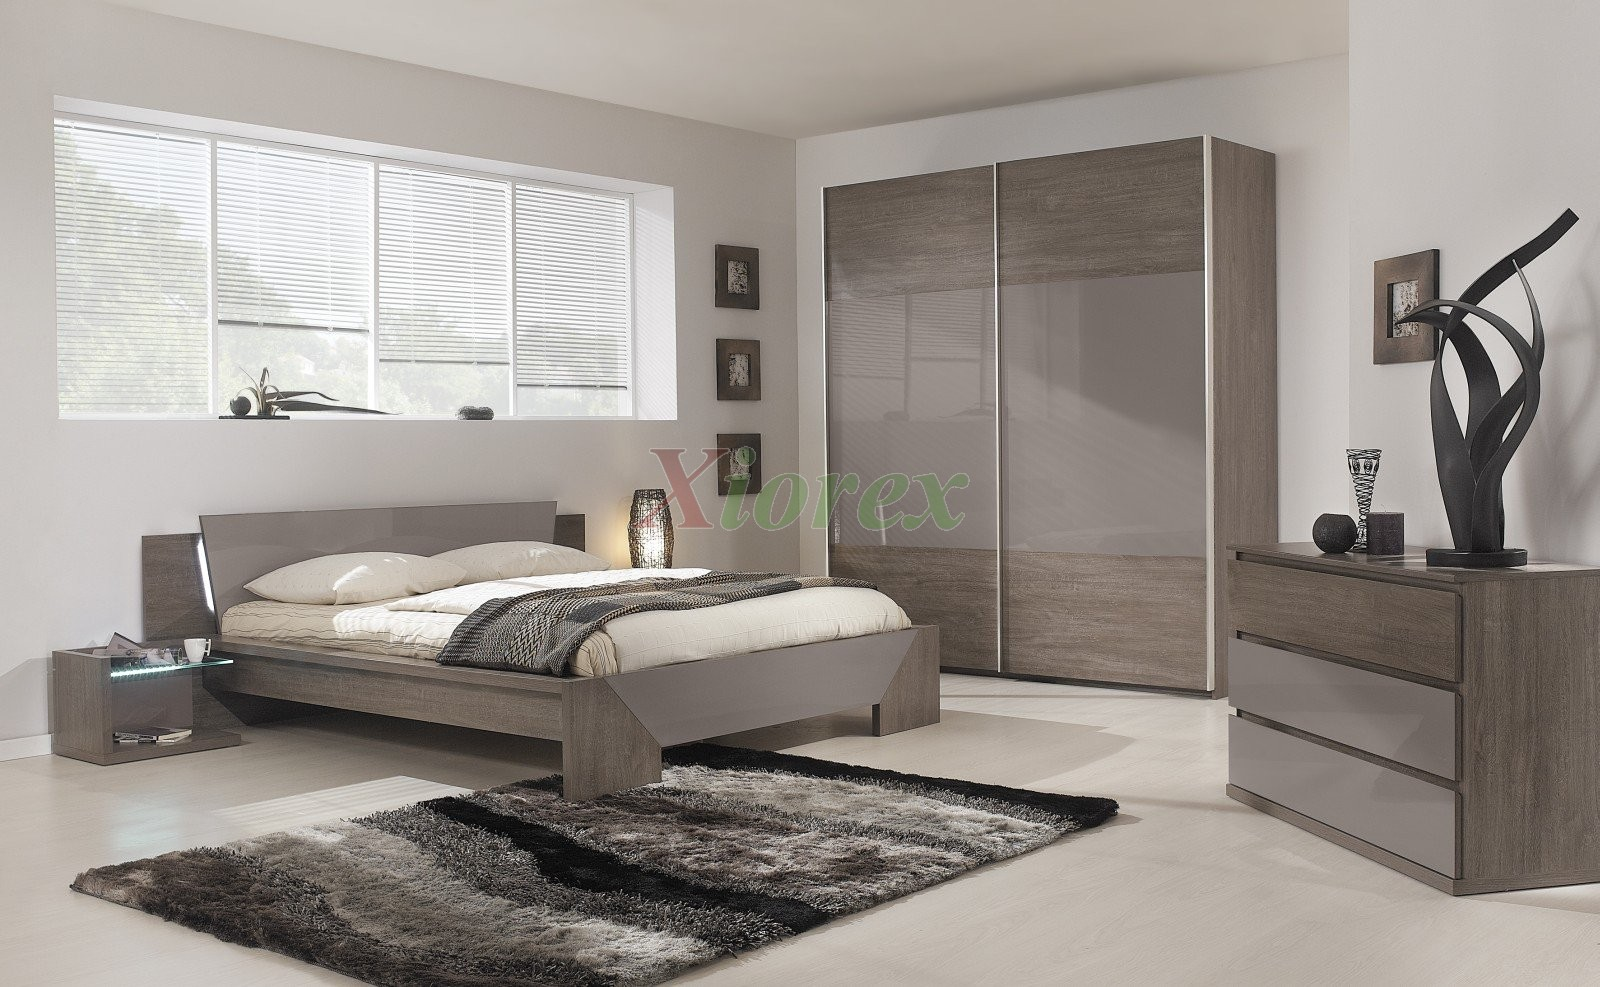 Modern bed gami trapeze bed set modern bedroom set by for New furniture bedroom